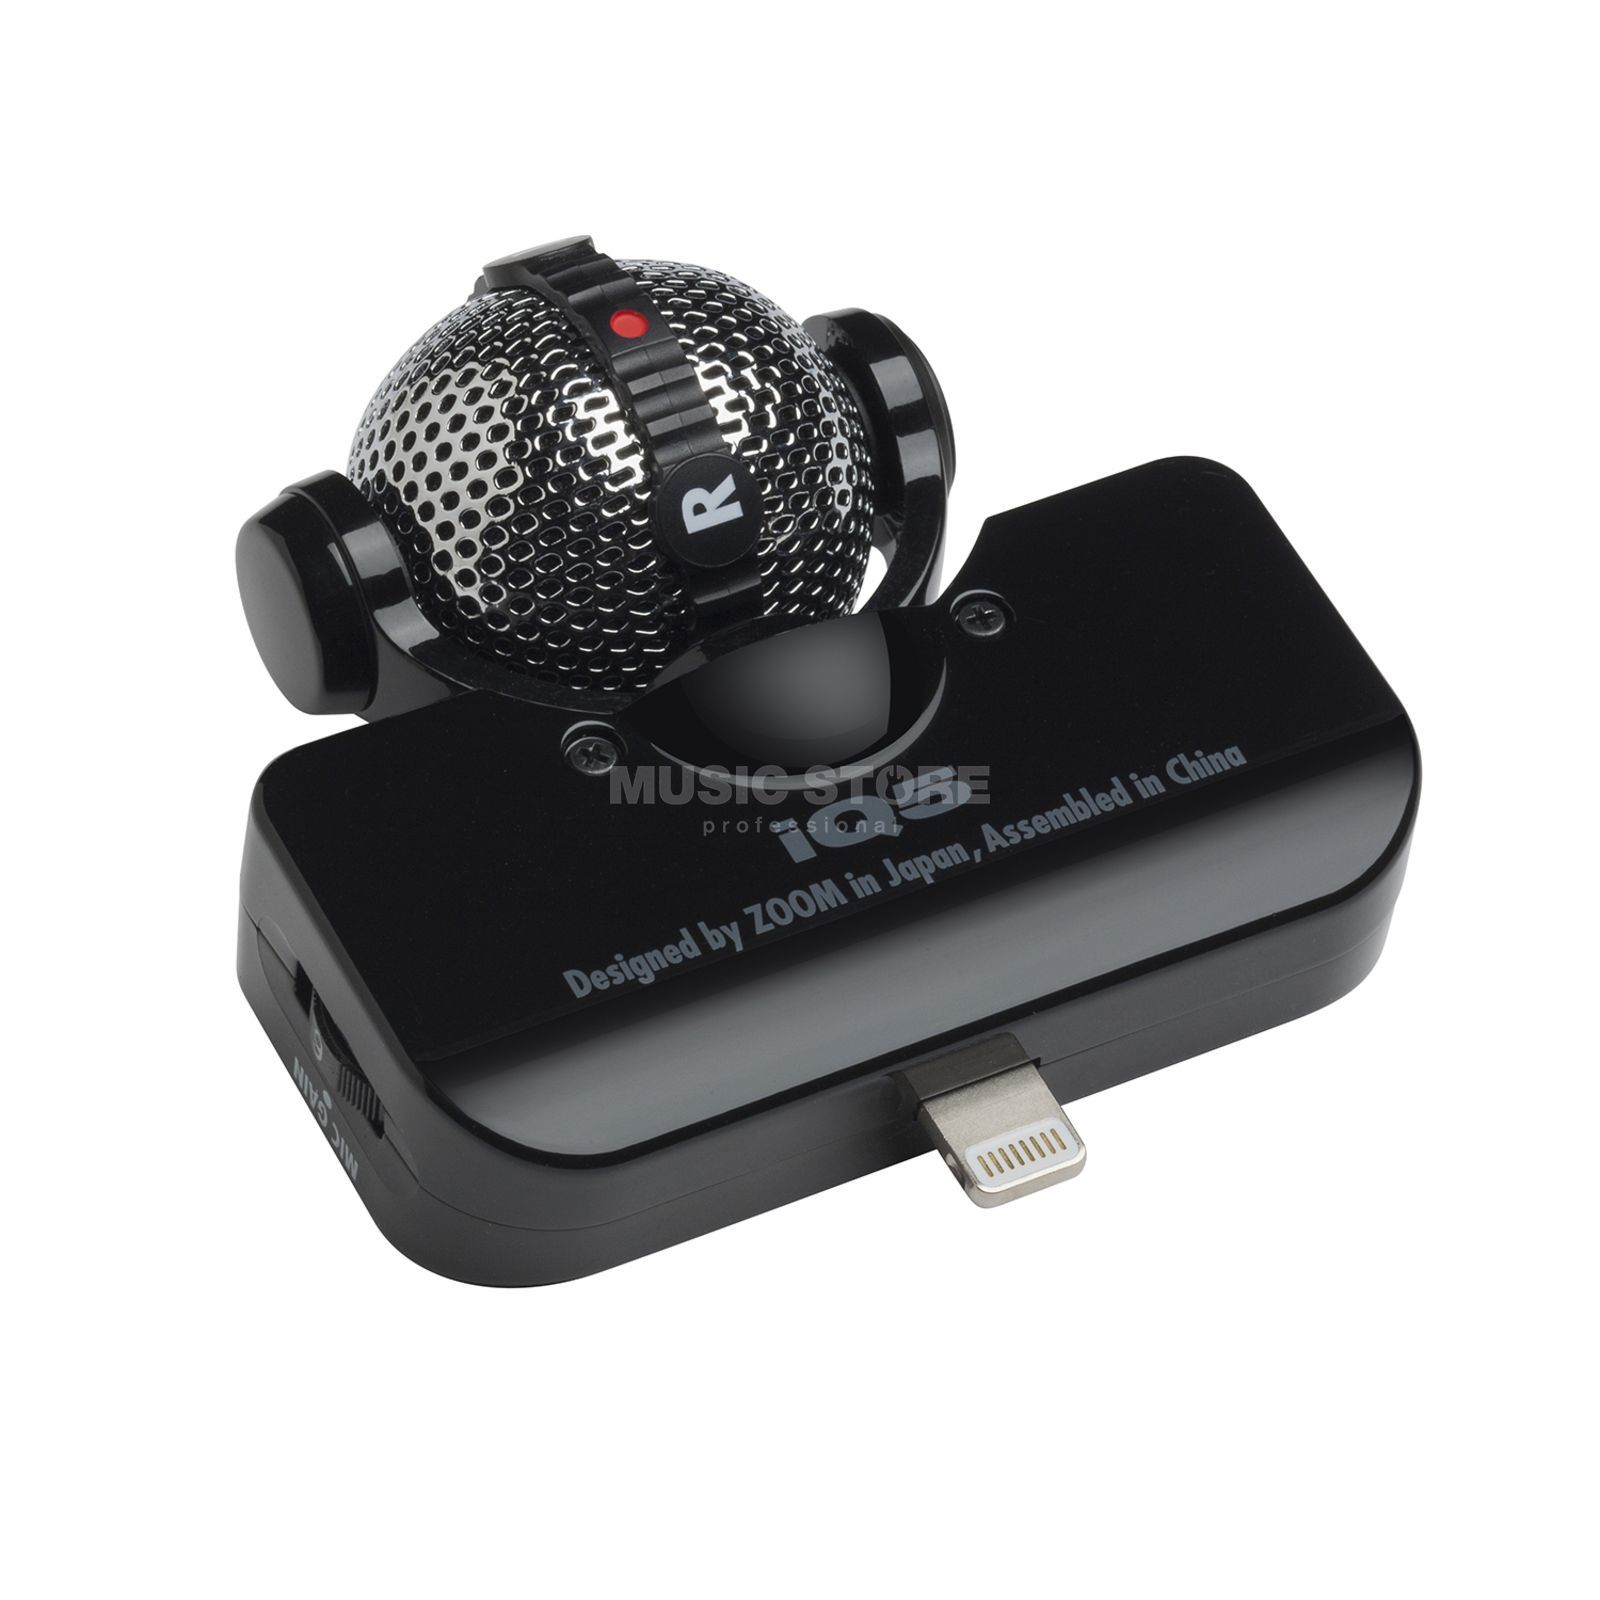 Zoom iQ5 Stereo Microphone Black with Swivel Capsule Produktbillede